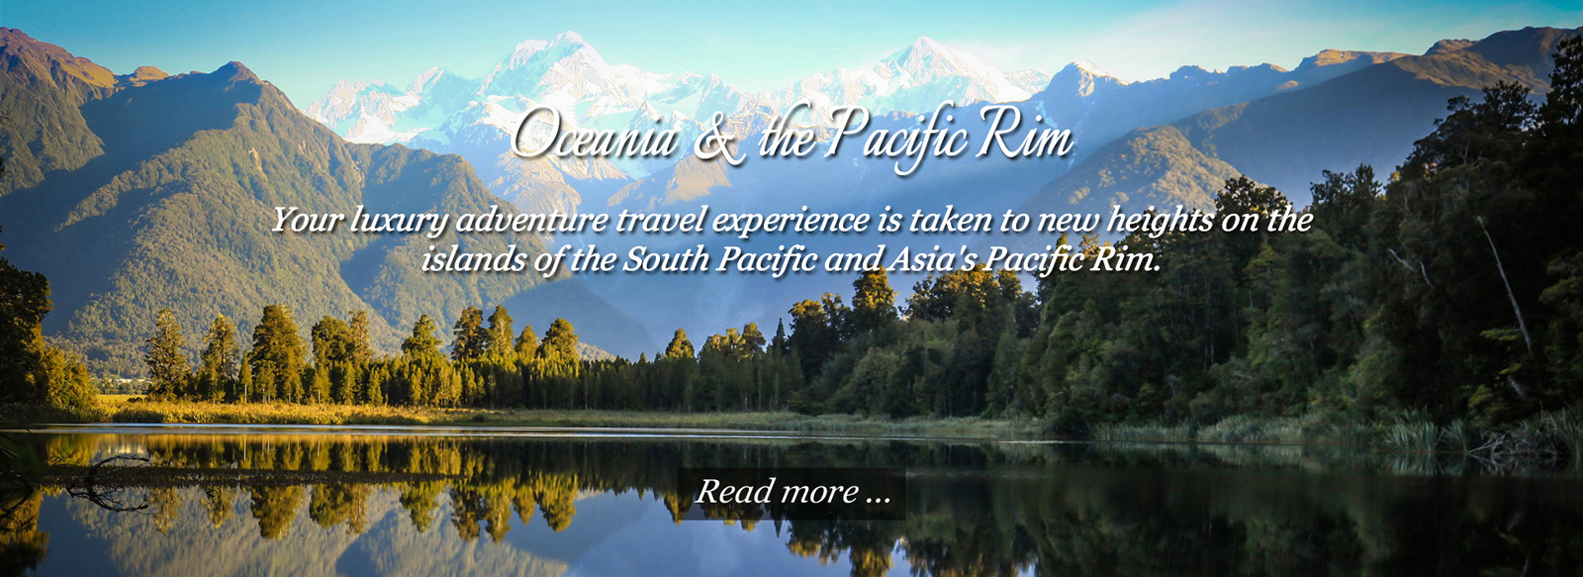 Oceania & The Pacific Rim